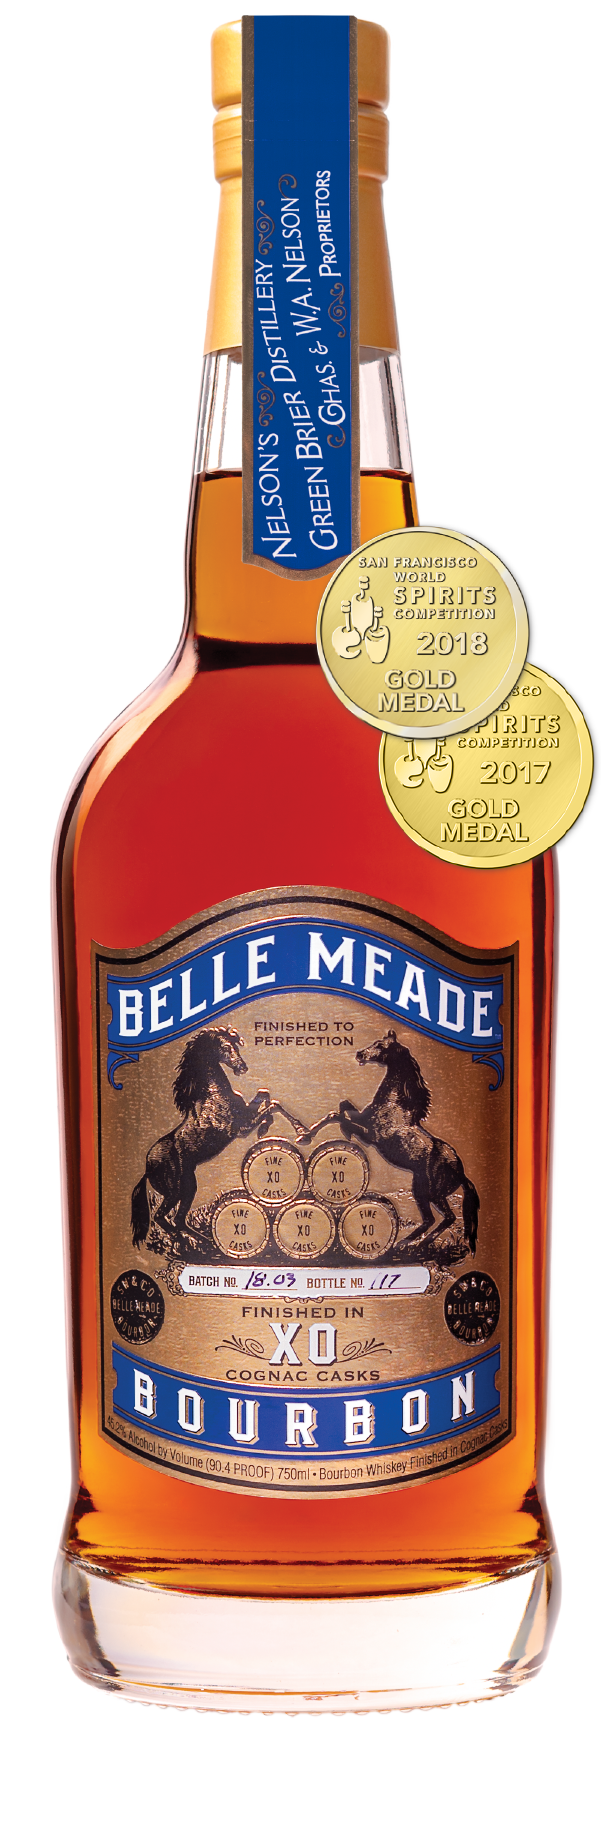 Belle Meade Bourbon Cognac Cask Finish